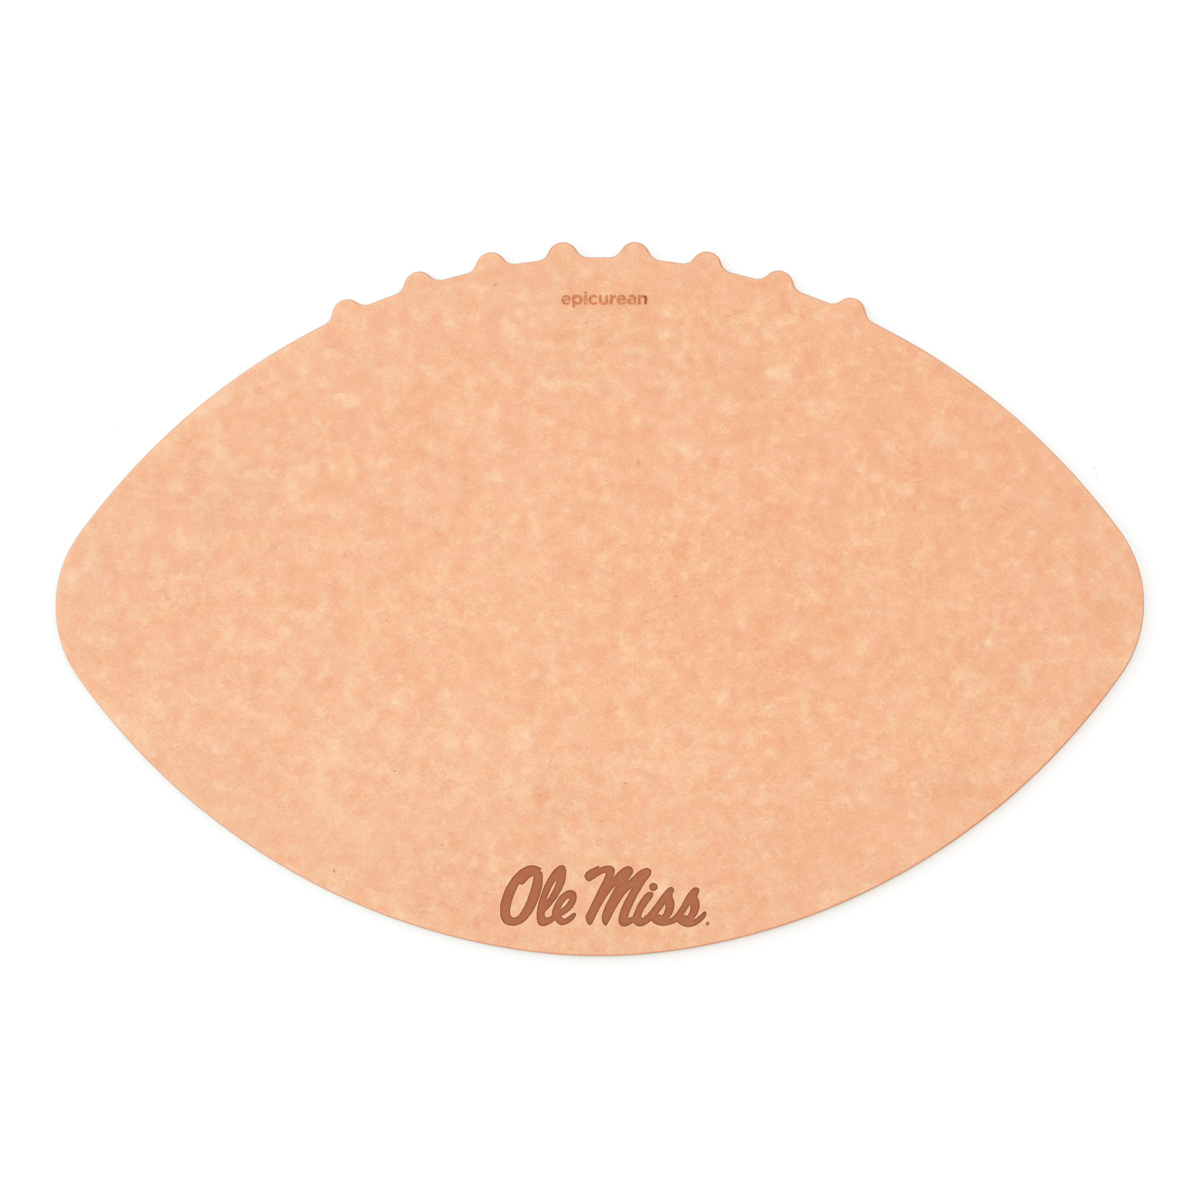 Epicurean University of Mississippi (Ole Miss) 16 x 10.5 Inch Football Cutting and Serving Board